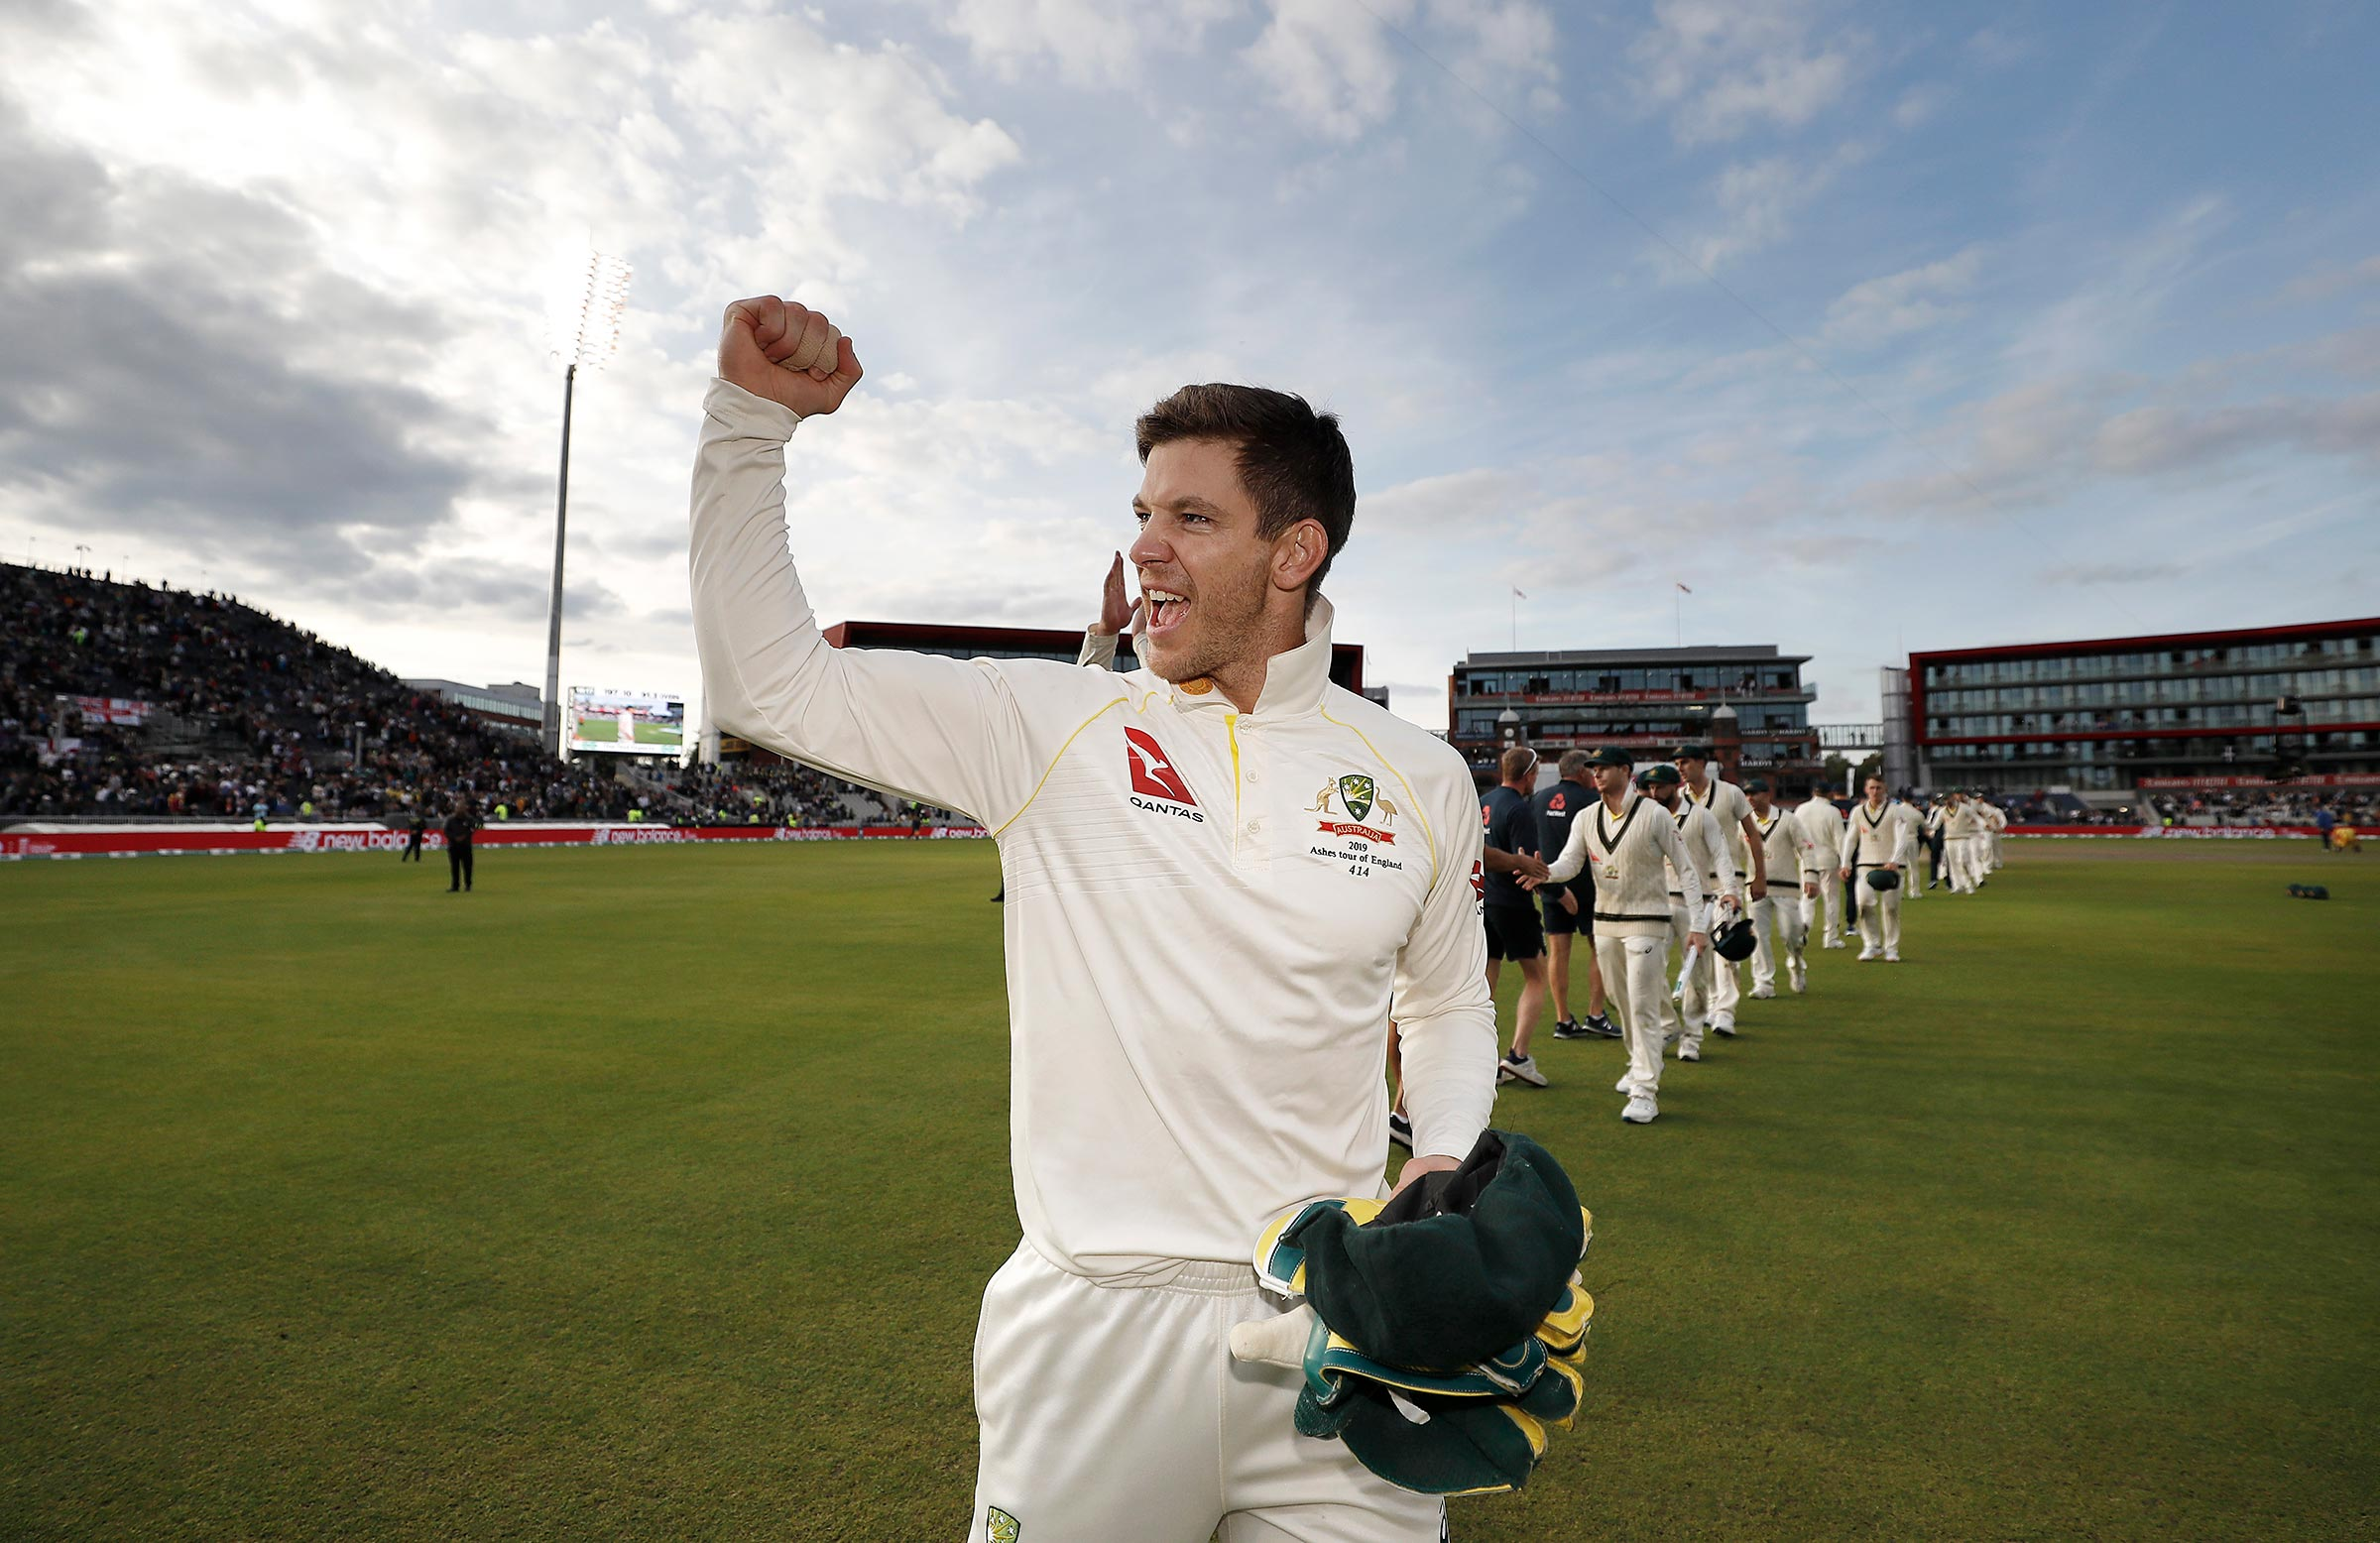 Paine celebrates in Manchester // Getty